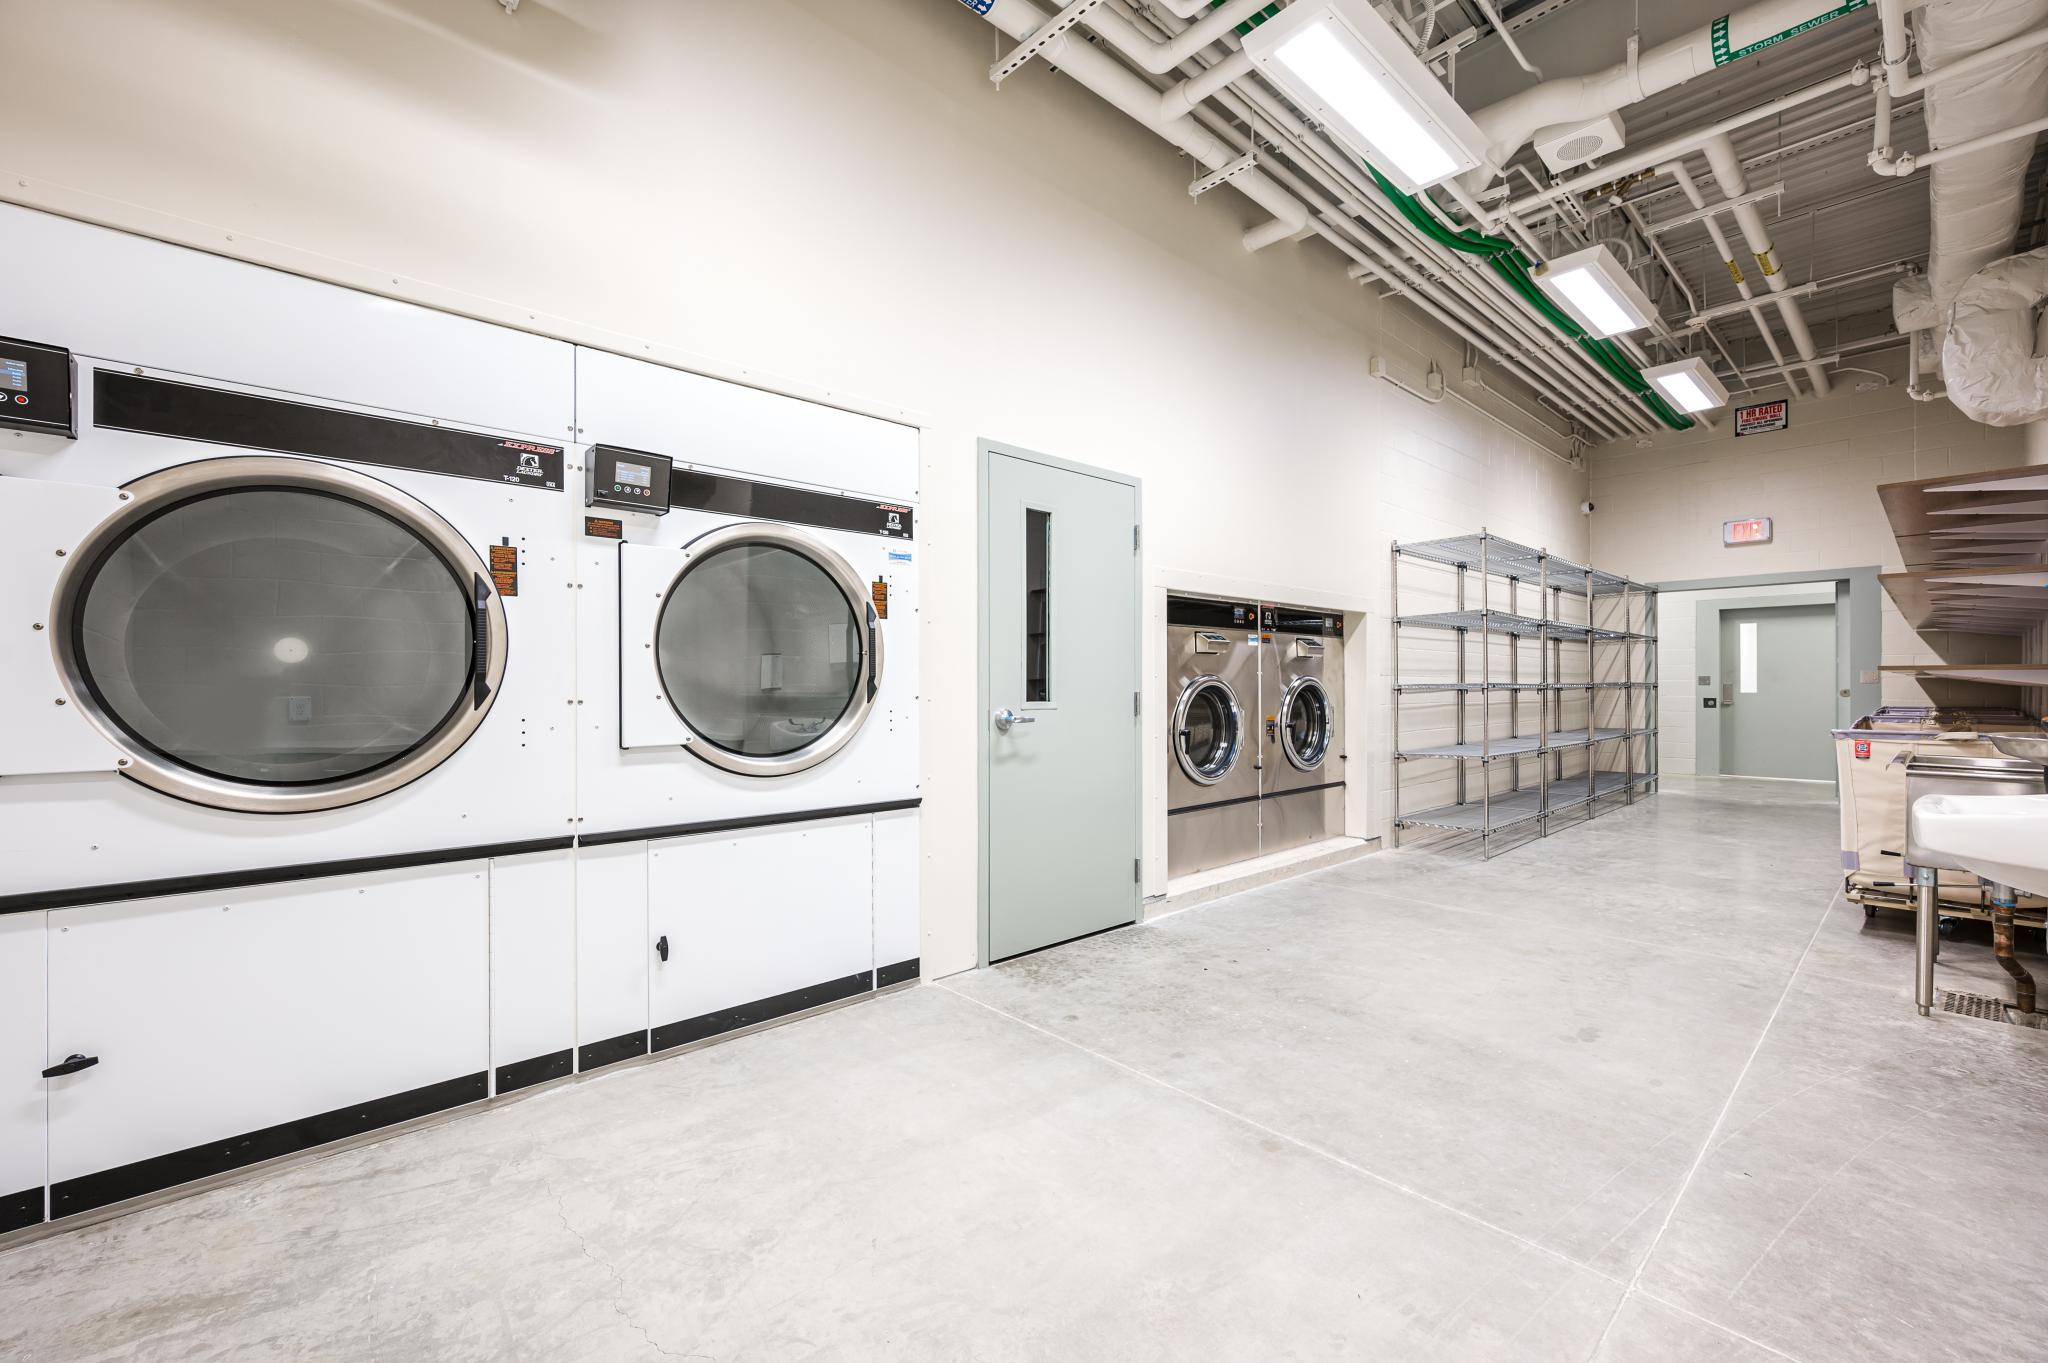 an image of a laundry room